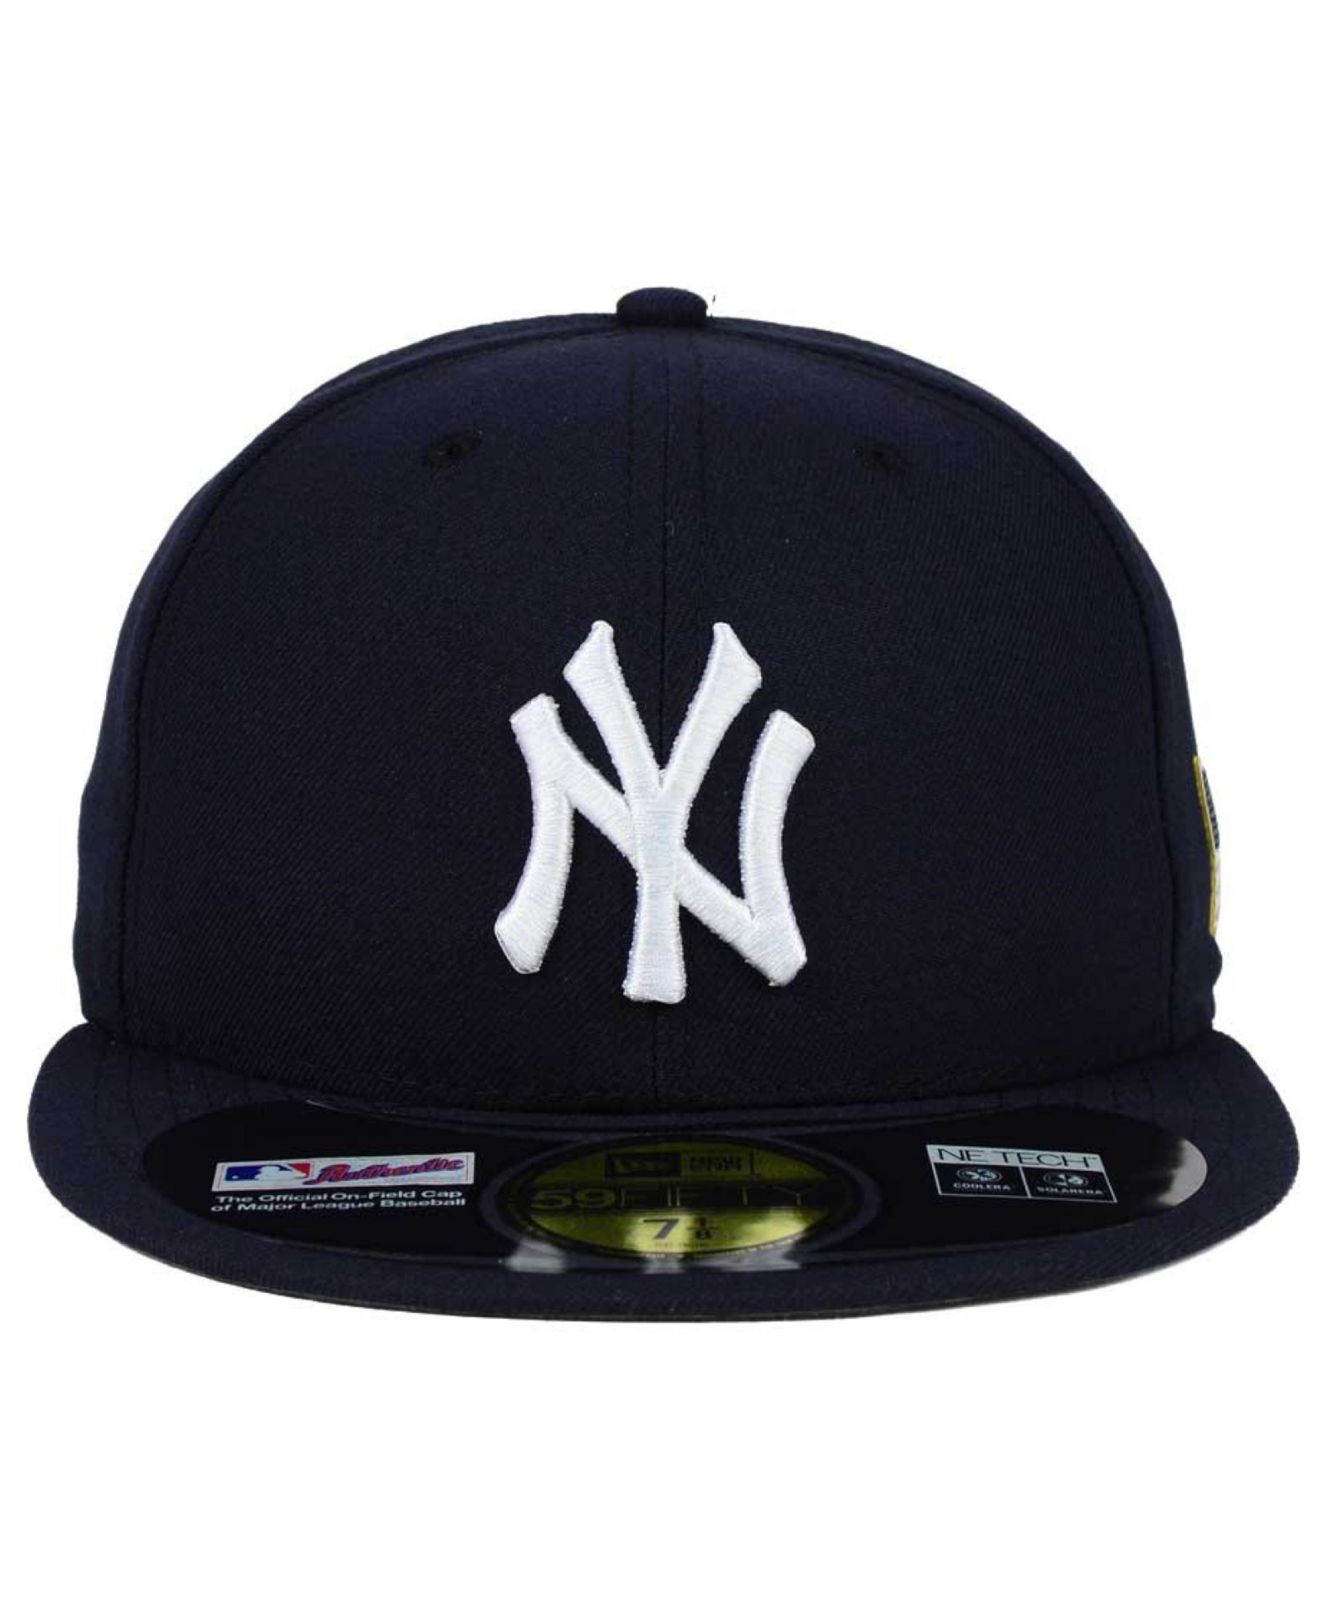 cdb369def24 ... navy  lyst ktz new york yankees ac 9 11 patch 59fifty cap in blue for  men